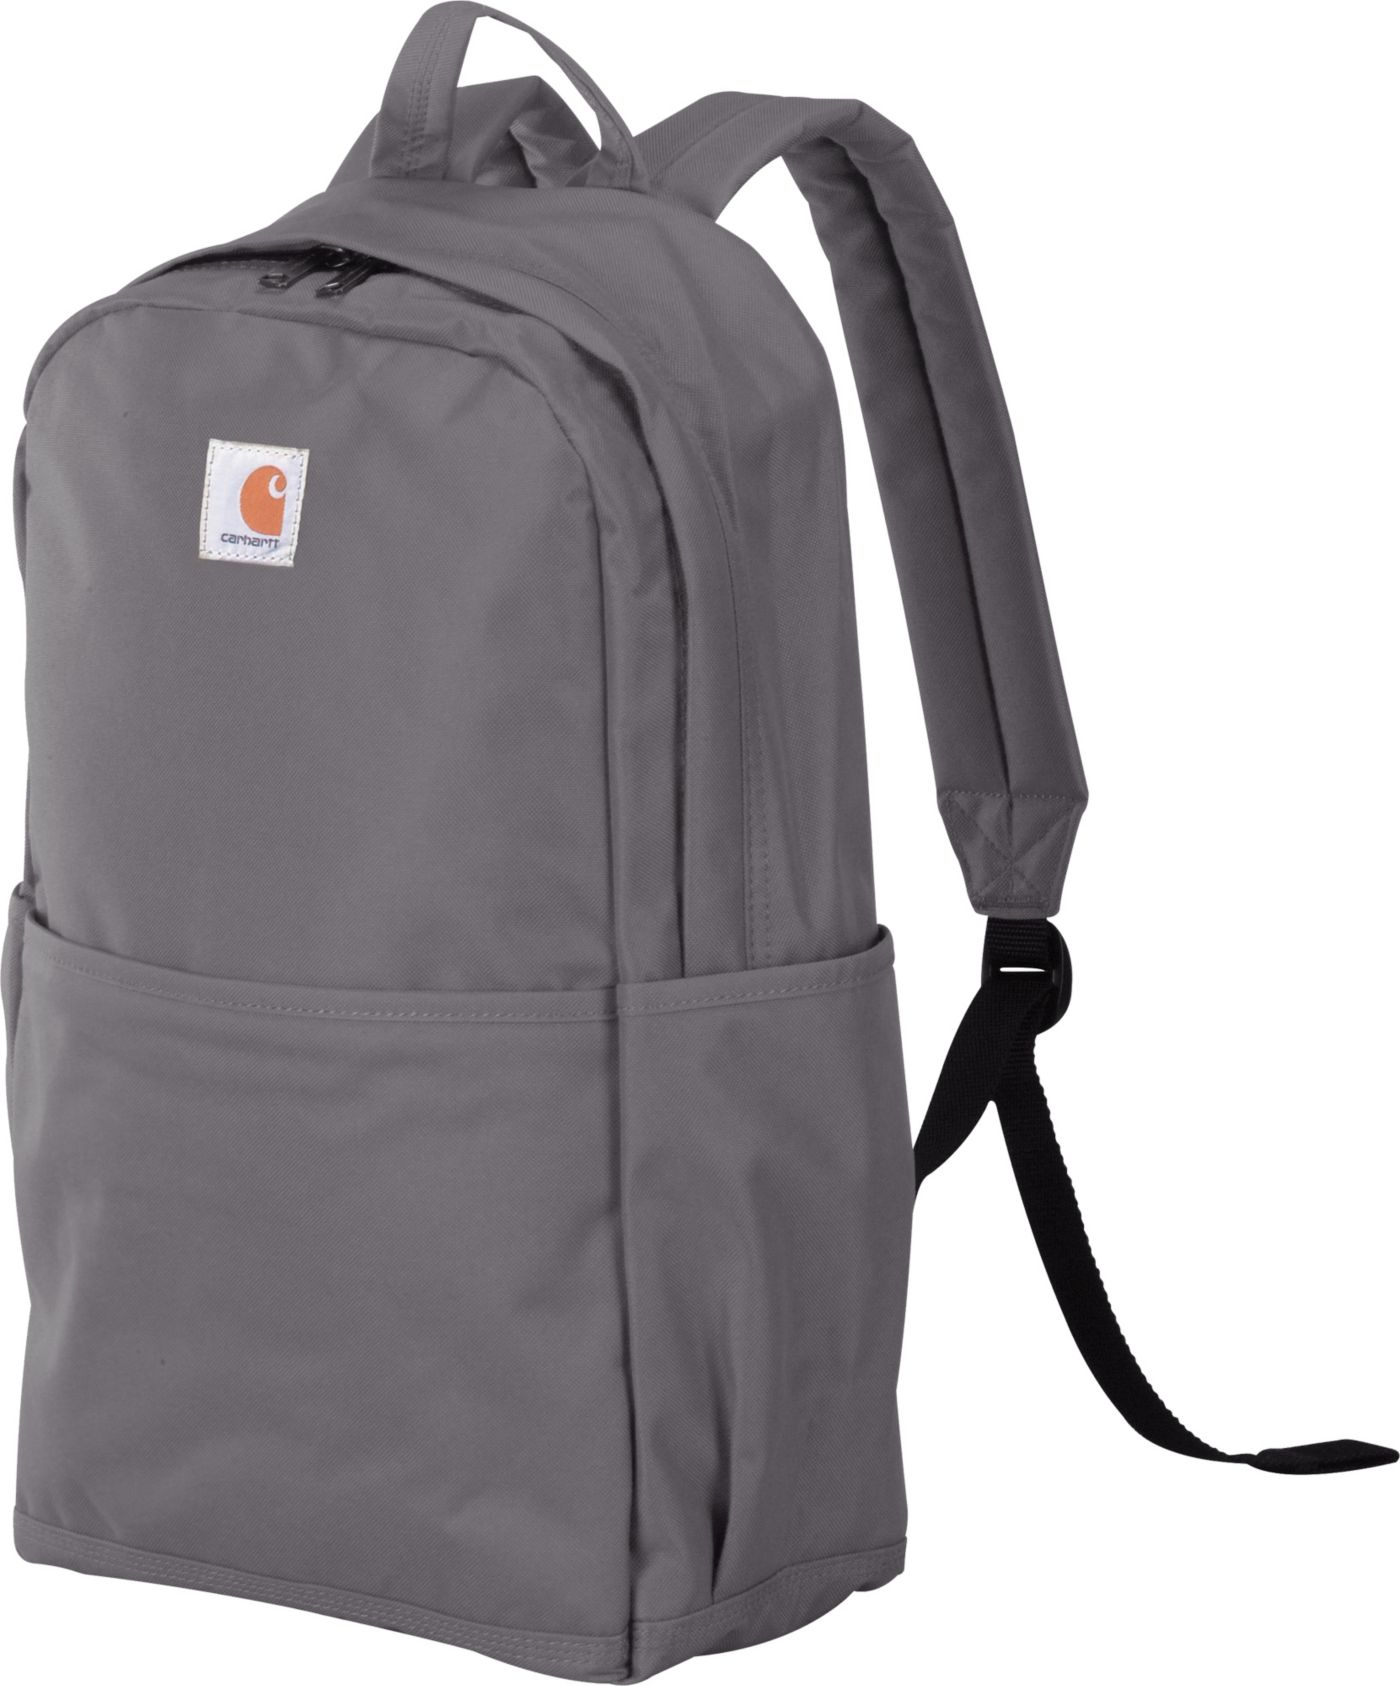 Carhartt Men's Trade Plus Backpack